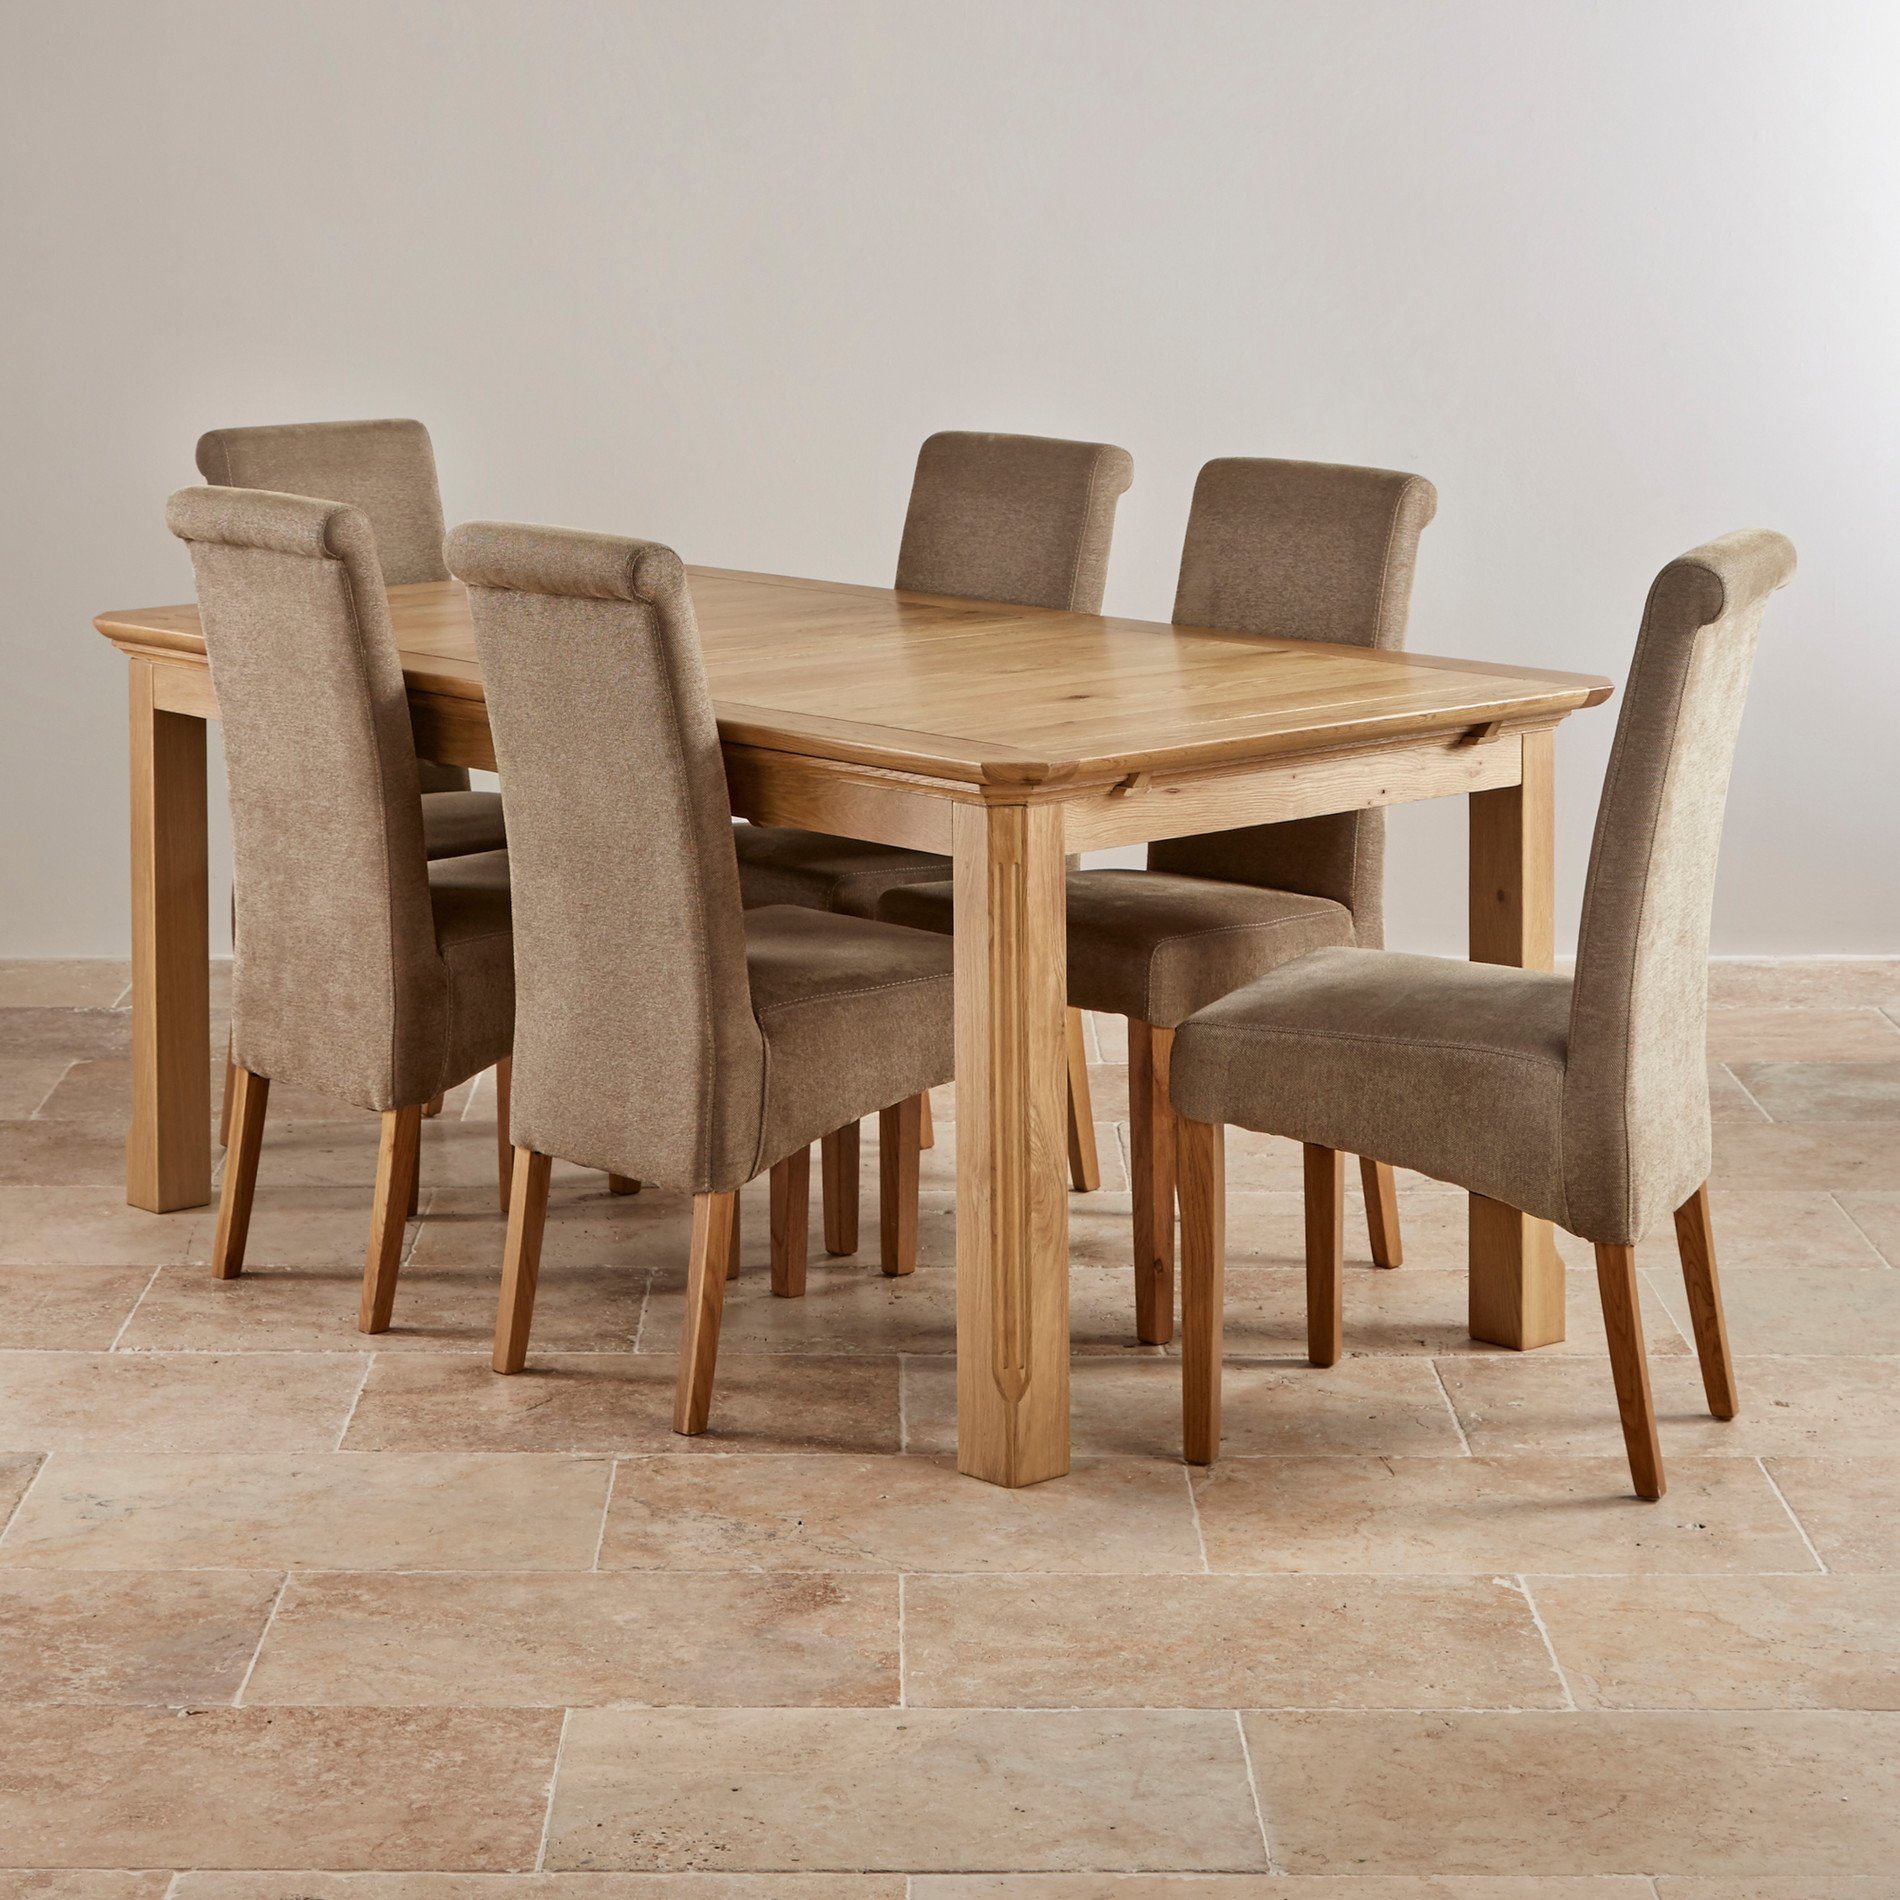 oak dining set 6 chairs baby sofa chair edinburgh natural solid 6ft extending